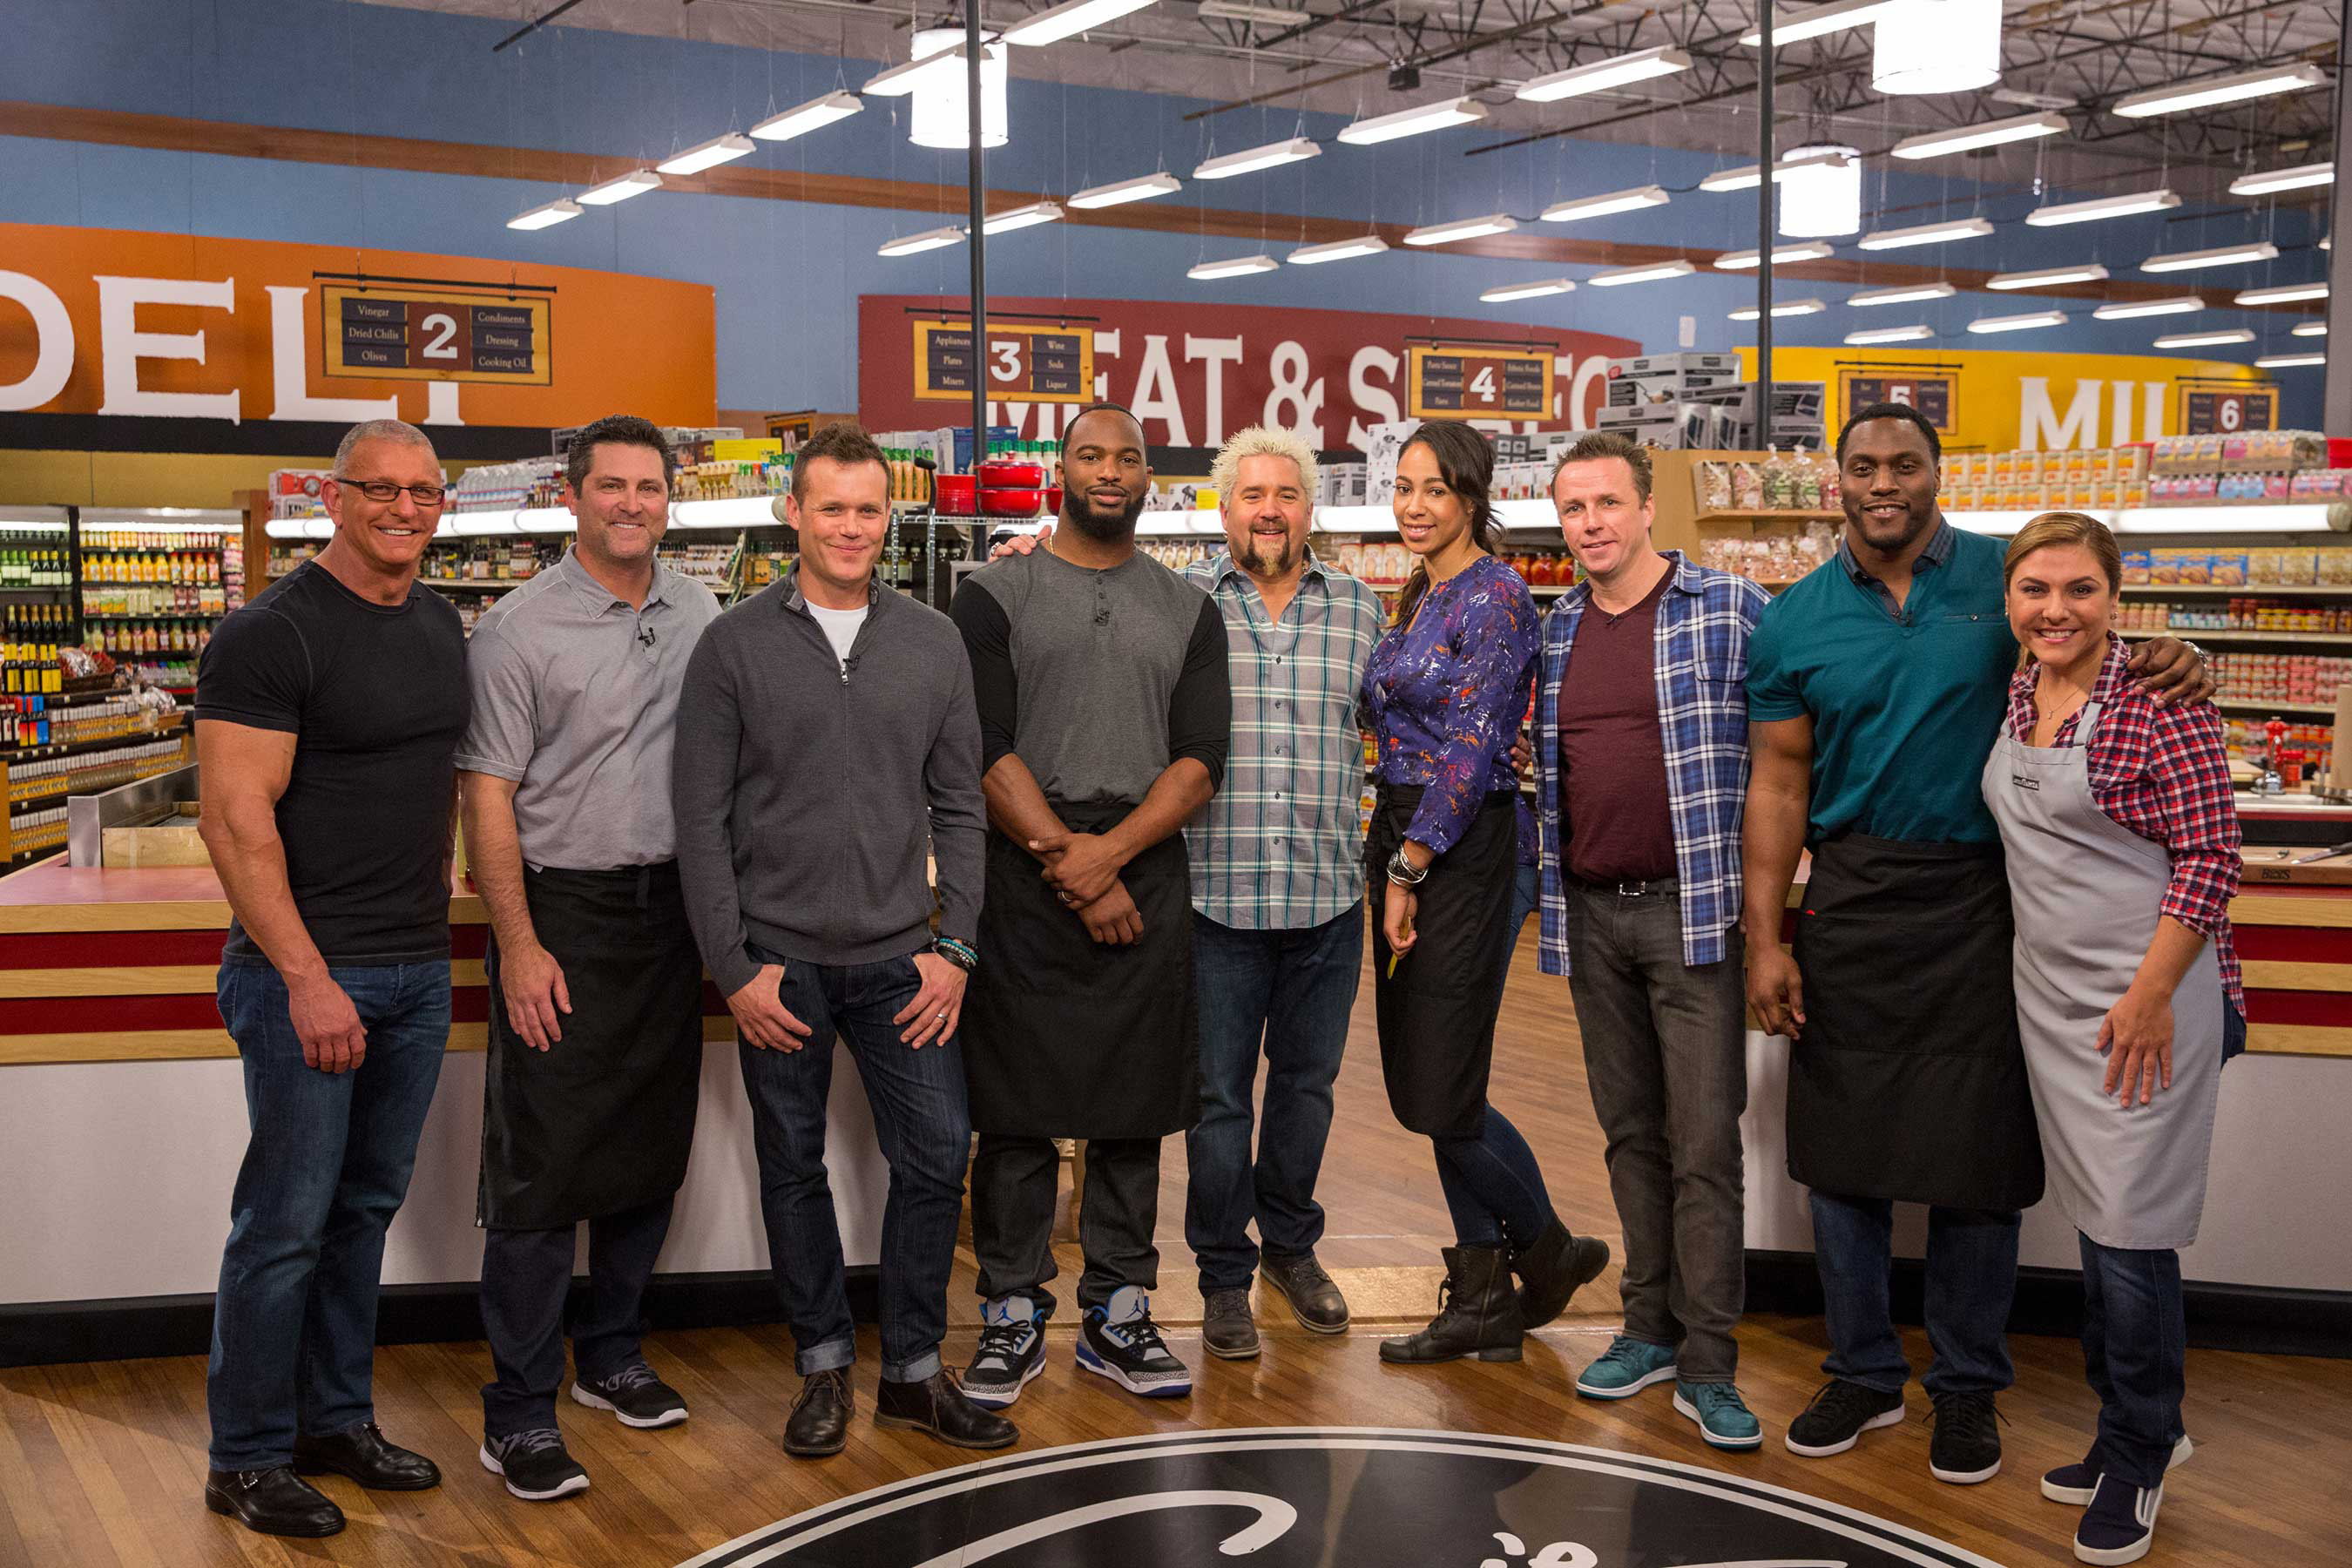 Food Network All Stars Take To The Aisles